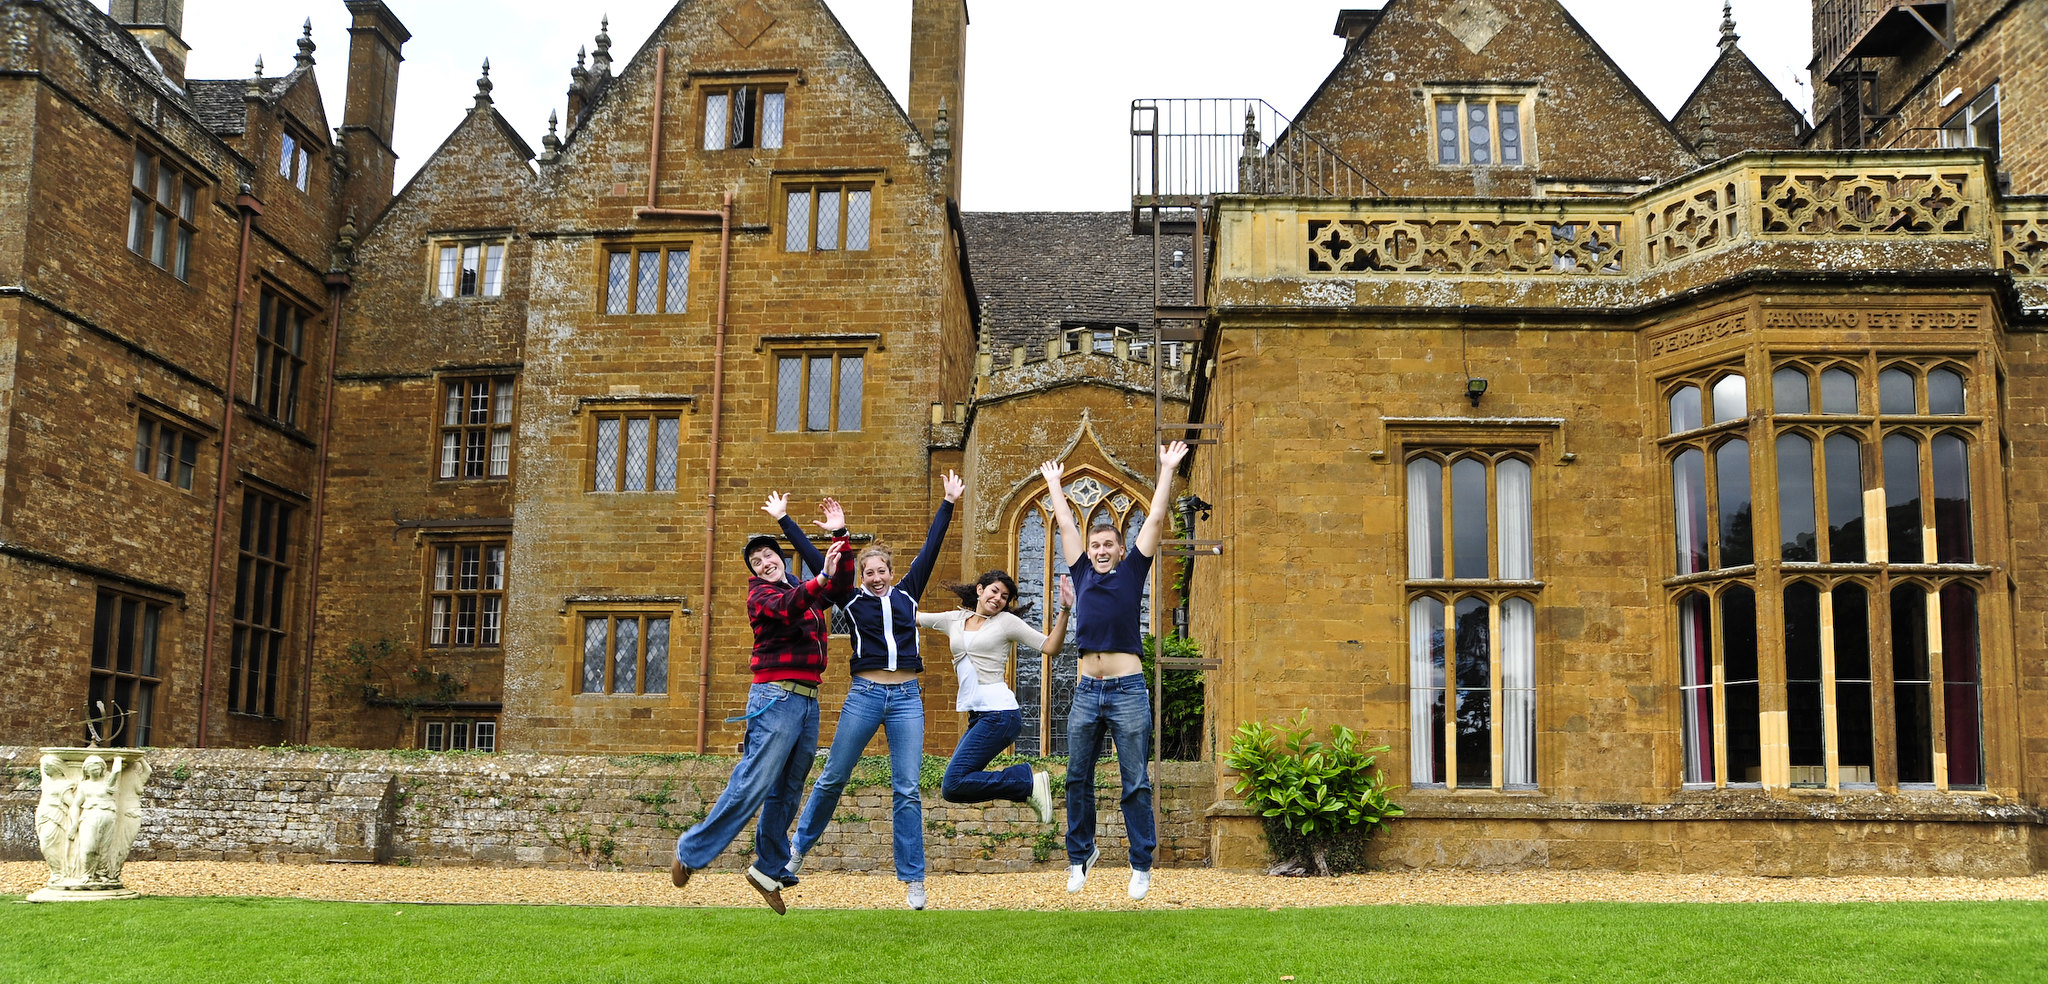 Wroxton Abbey in the background, with students jumping joy in the foreground.